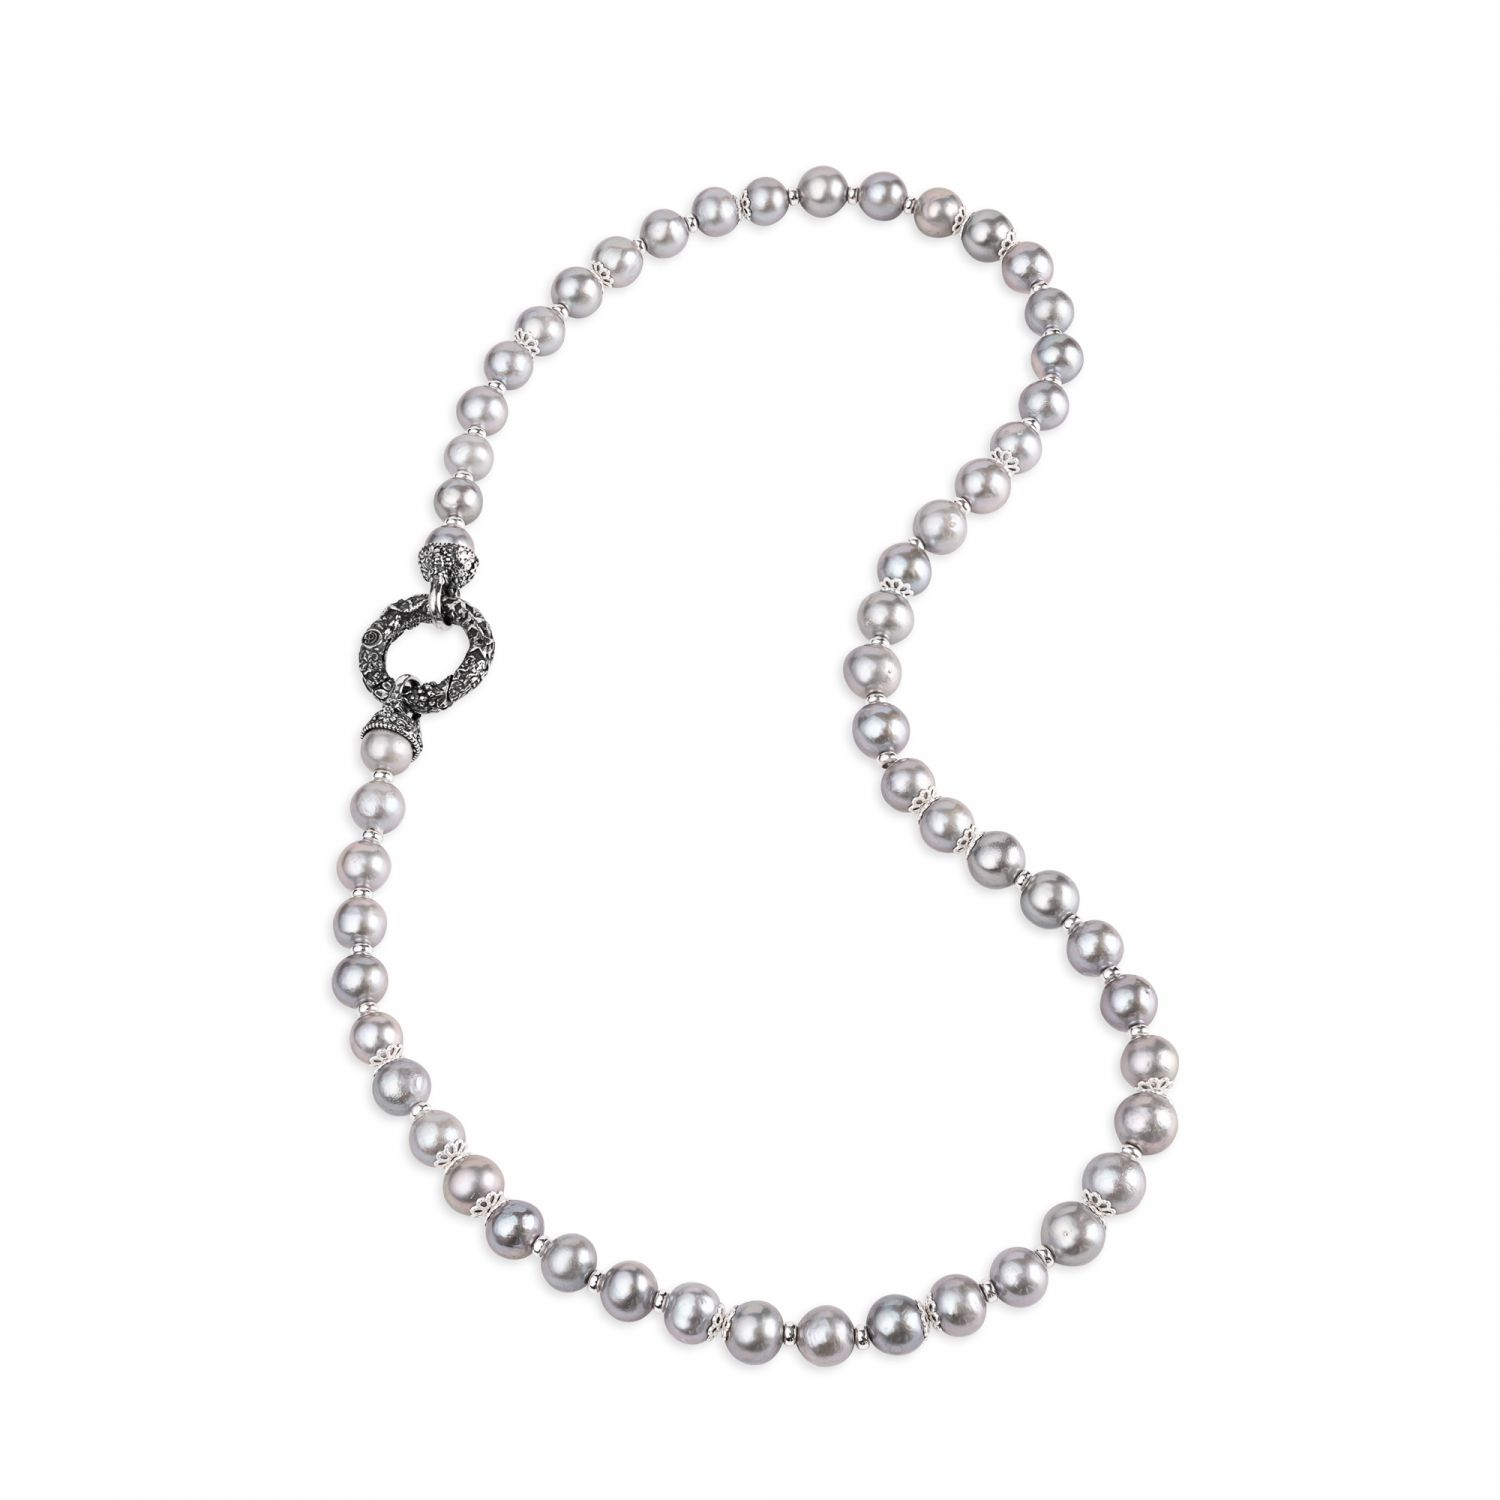 Pearl Necklace with Silver clasp (27866)